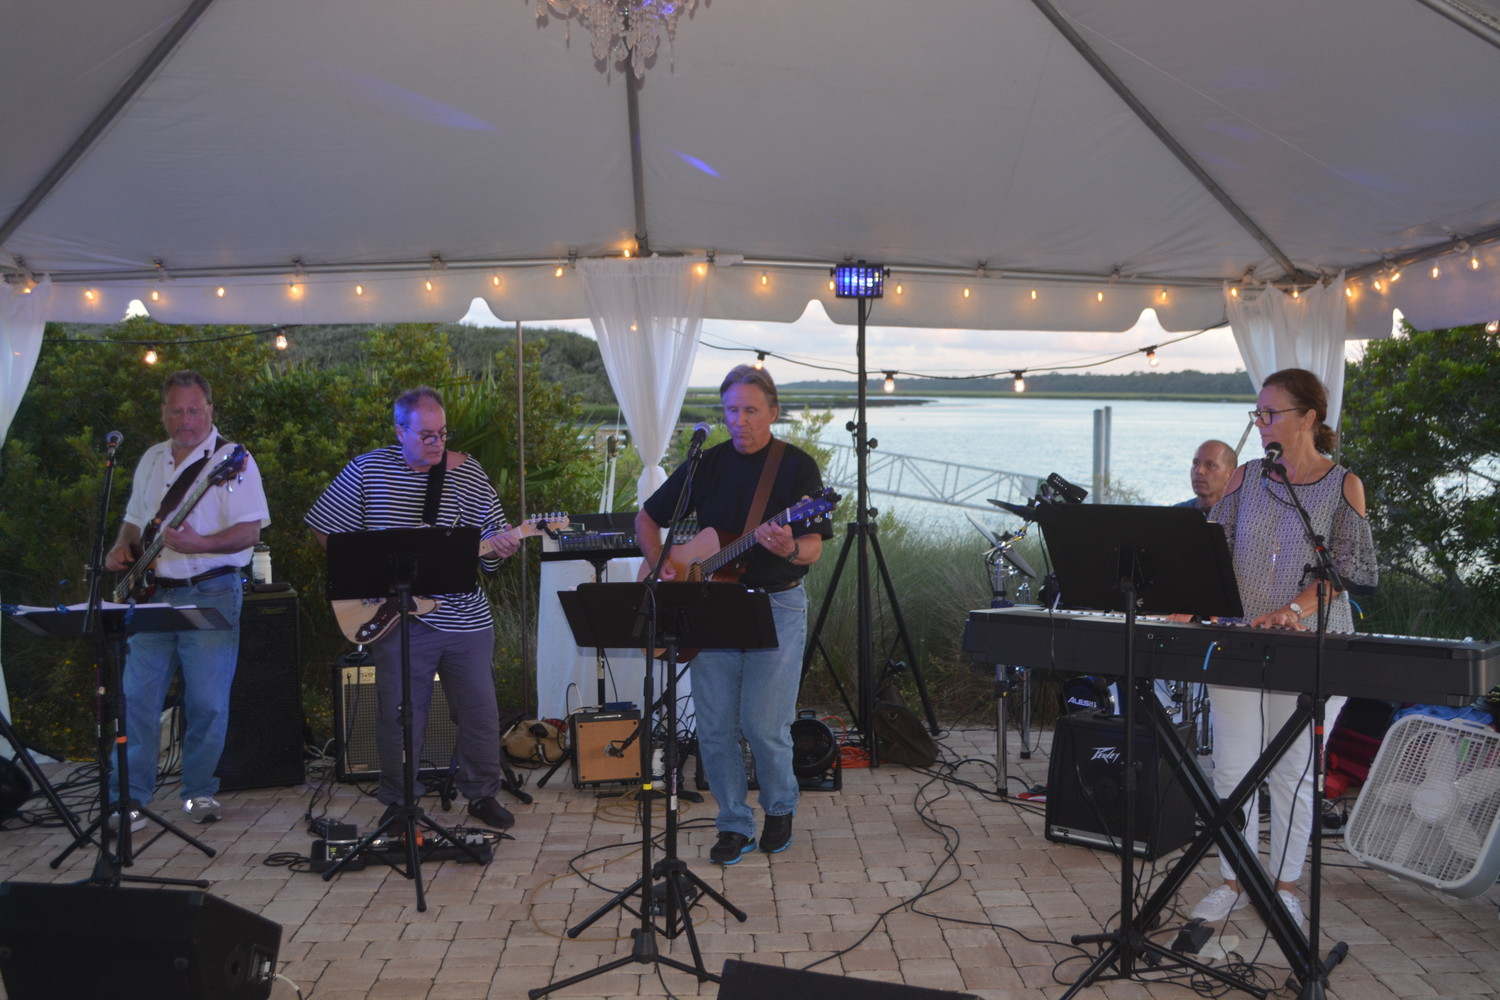 A band performs live music to entertain event goers at the GTM Research Reserve Oceanwise gala.